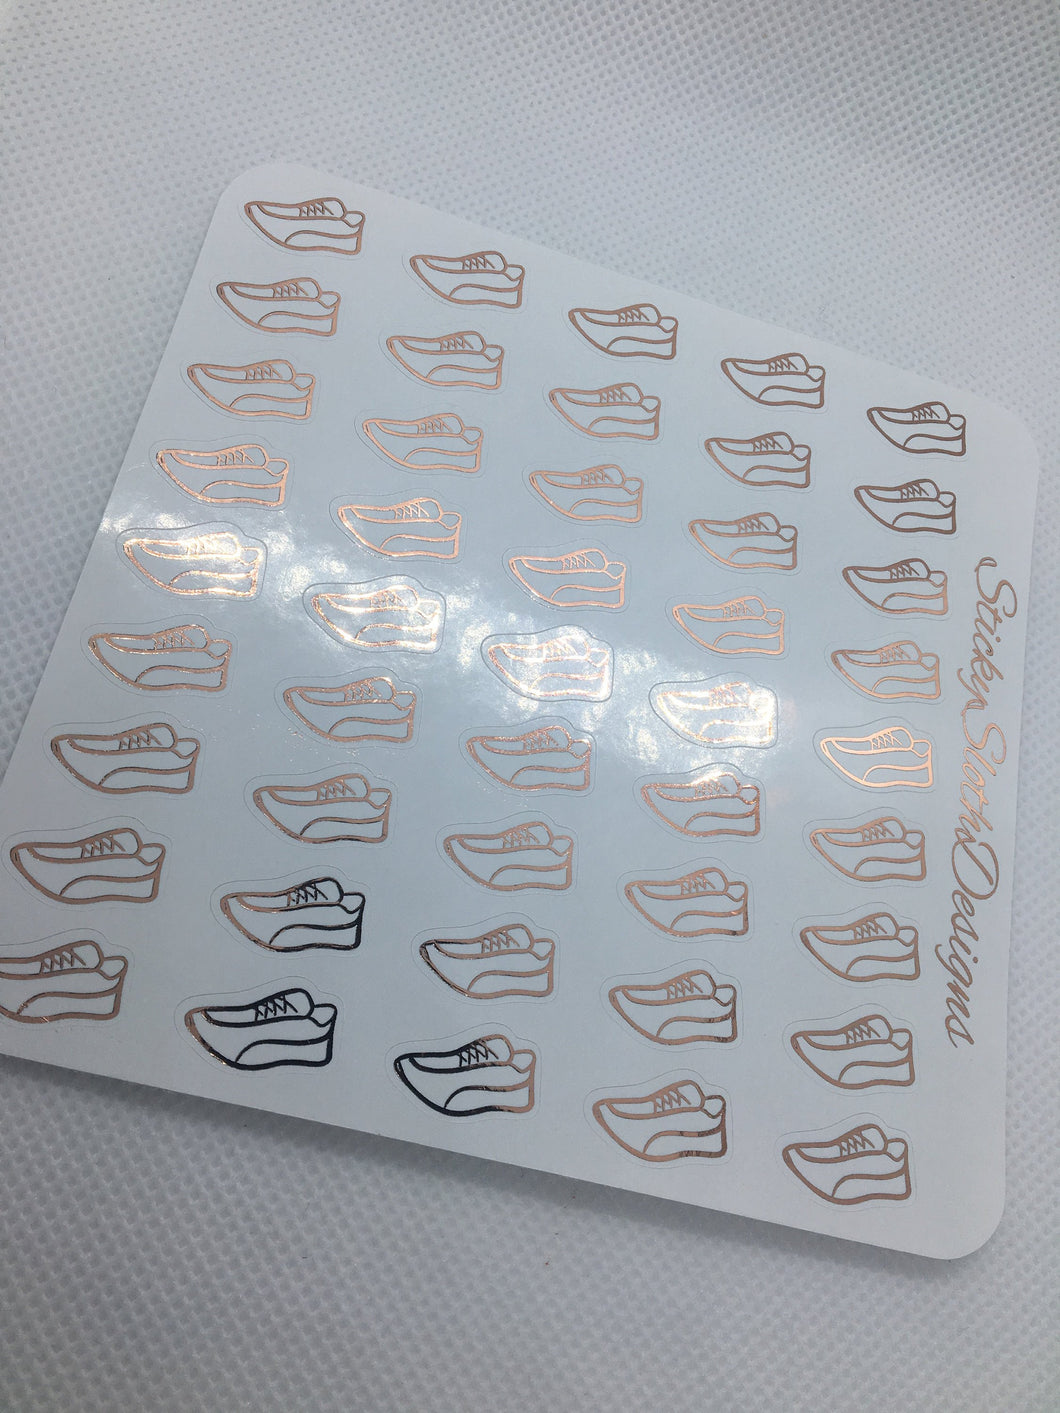 Foiled Running Shoe Planner Stickers